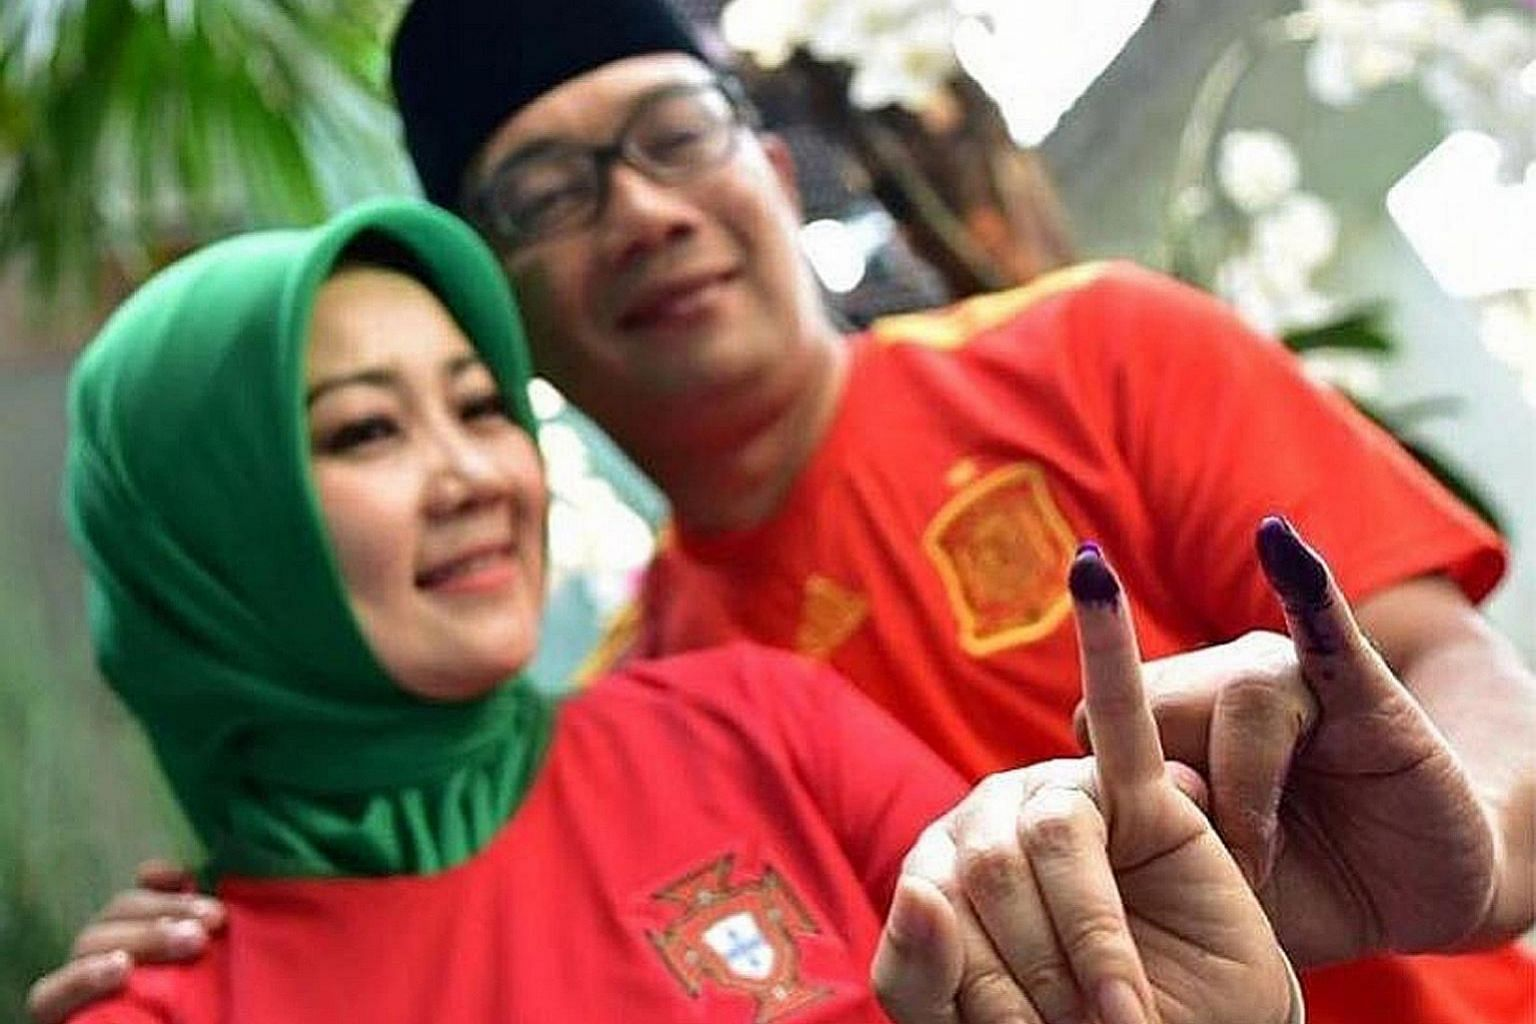 Bandung Mayor Ridwan Kamil and his wife Atalia Praratya showing their marked fingers after voting yesterday.